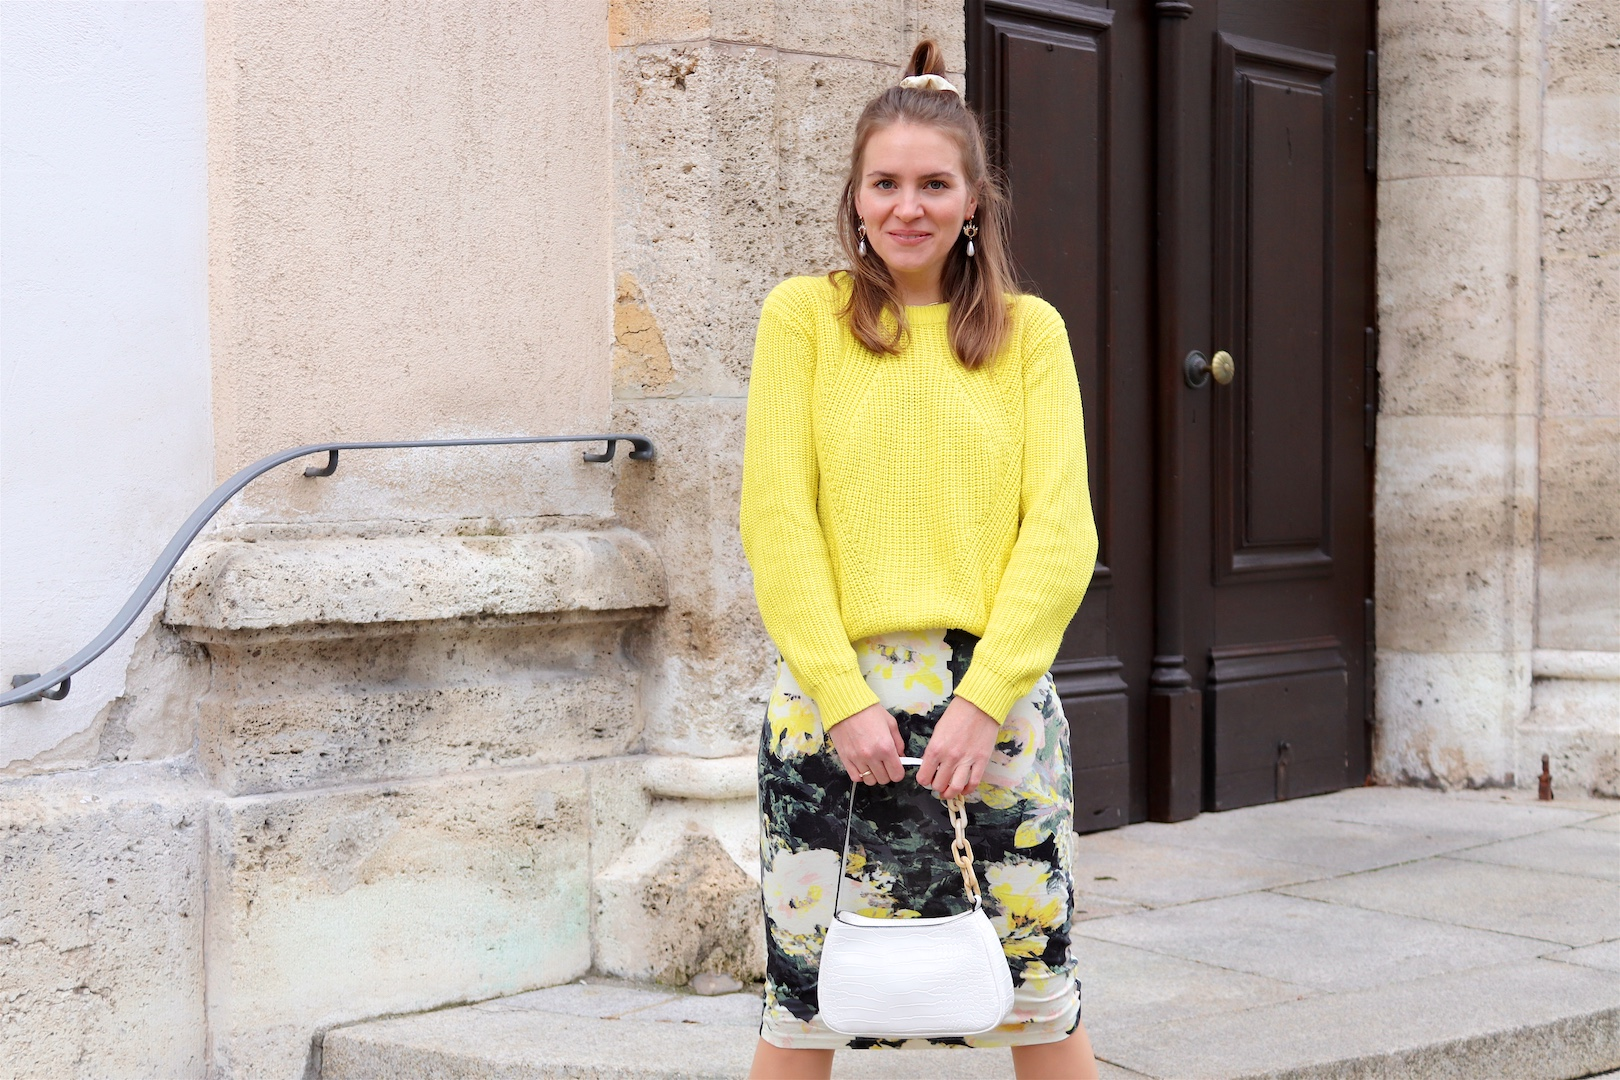 Yellow Flowers. Fashion and Style Blog Girl from Heartfelt Hunt. Girl with blonde half-up half-down messy bun and scrunchie wearing a yellow sweater, dress with yellow flowers, eye earrings, white bag and white boots.